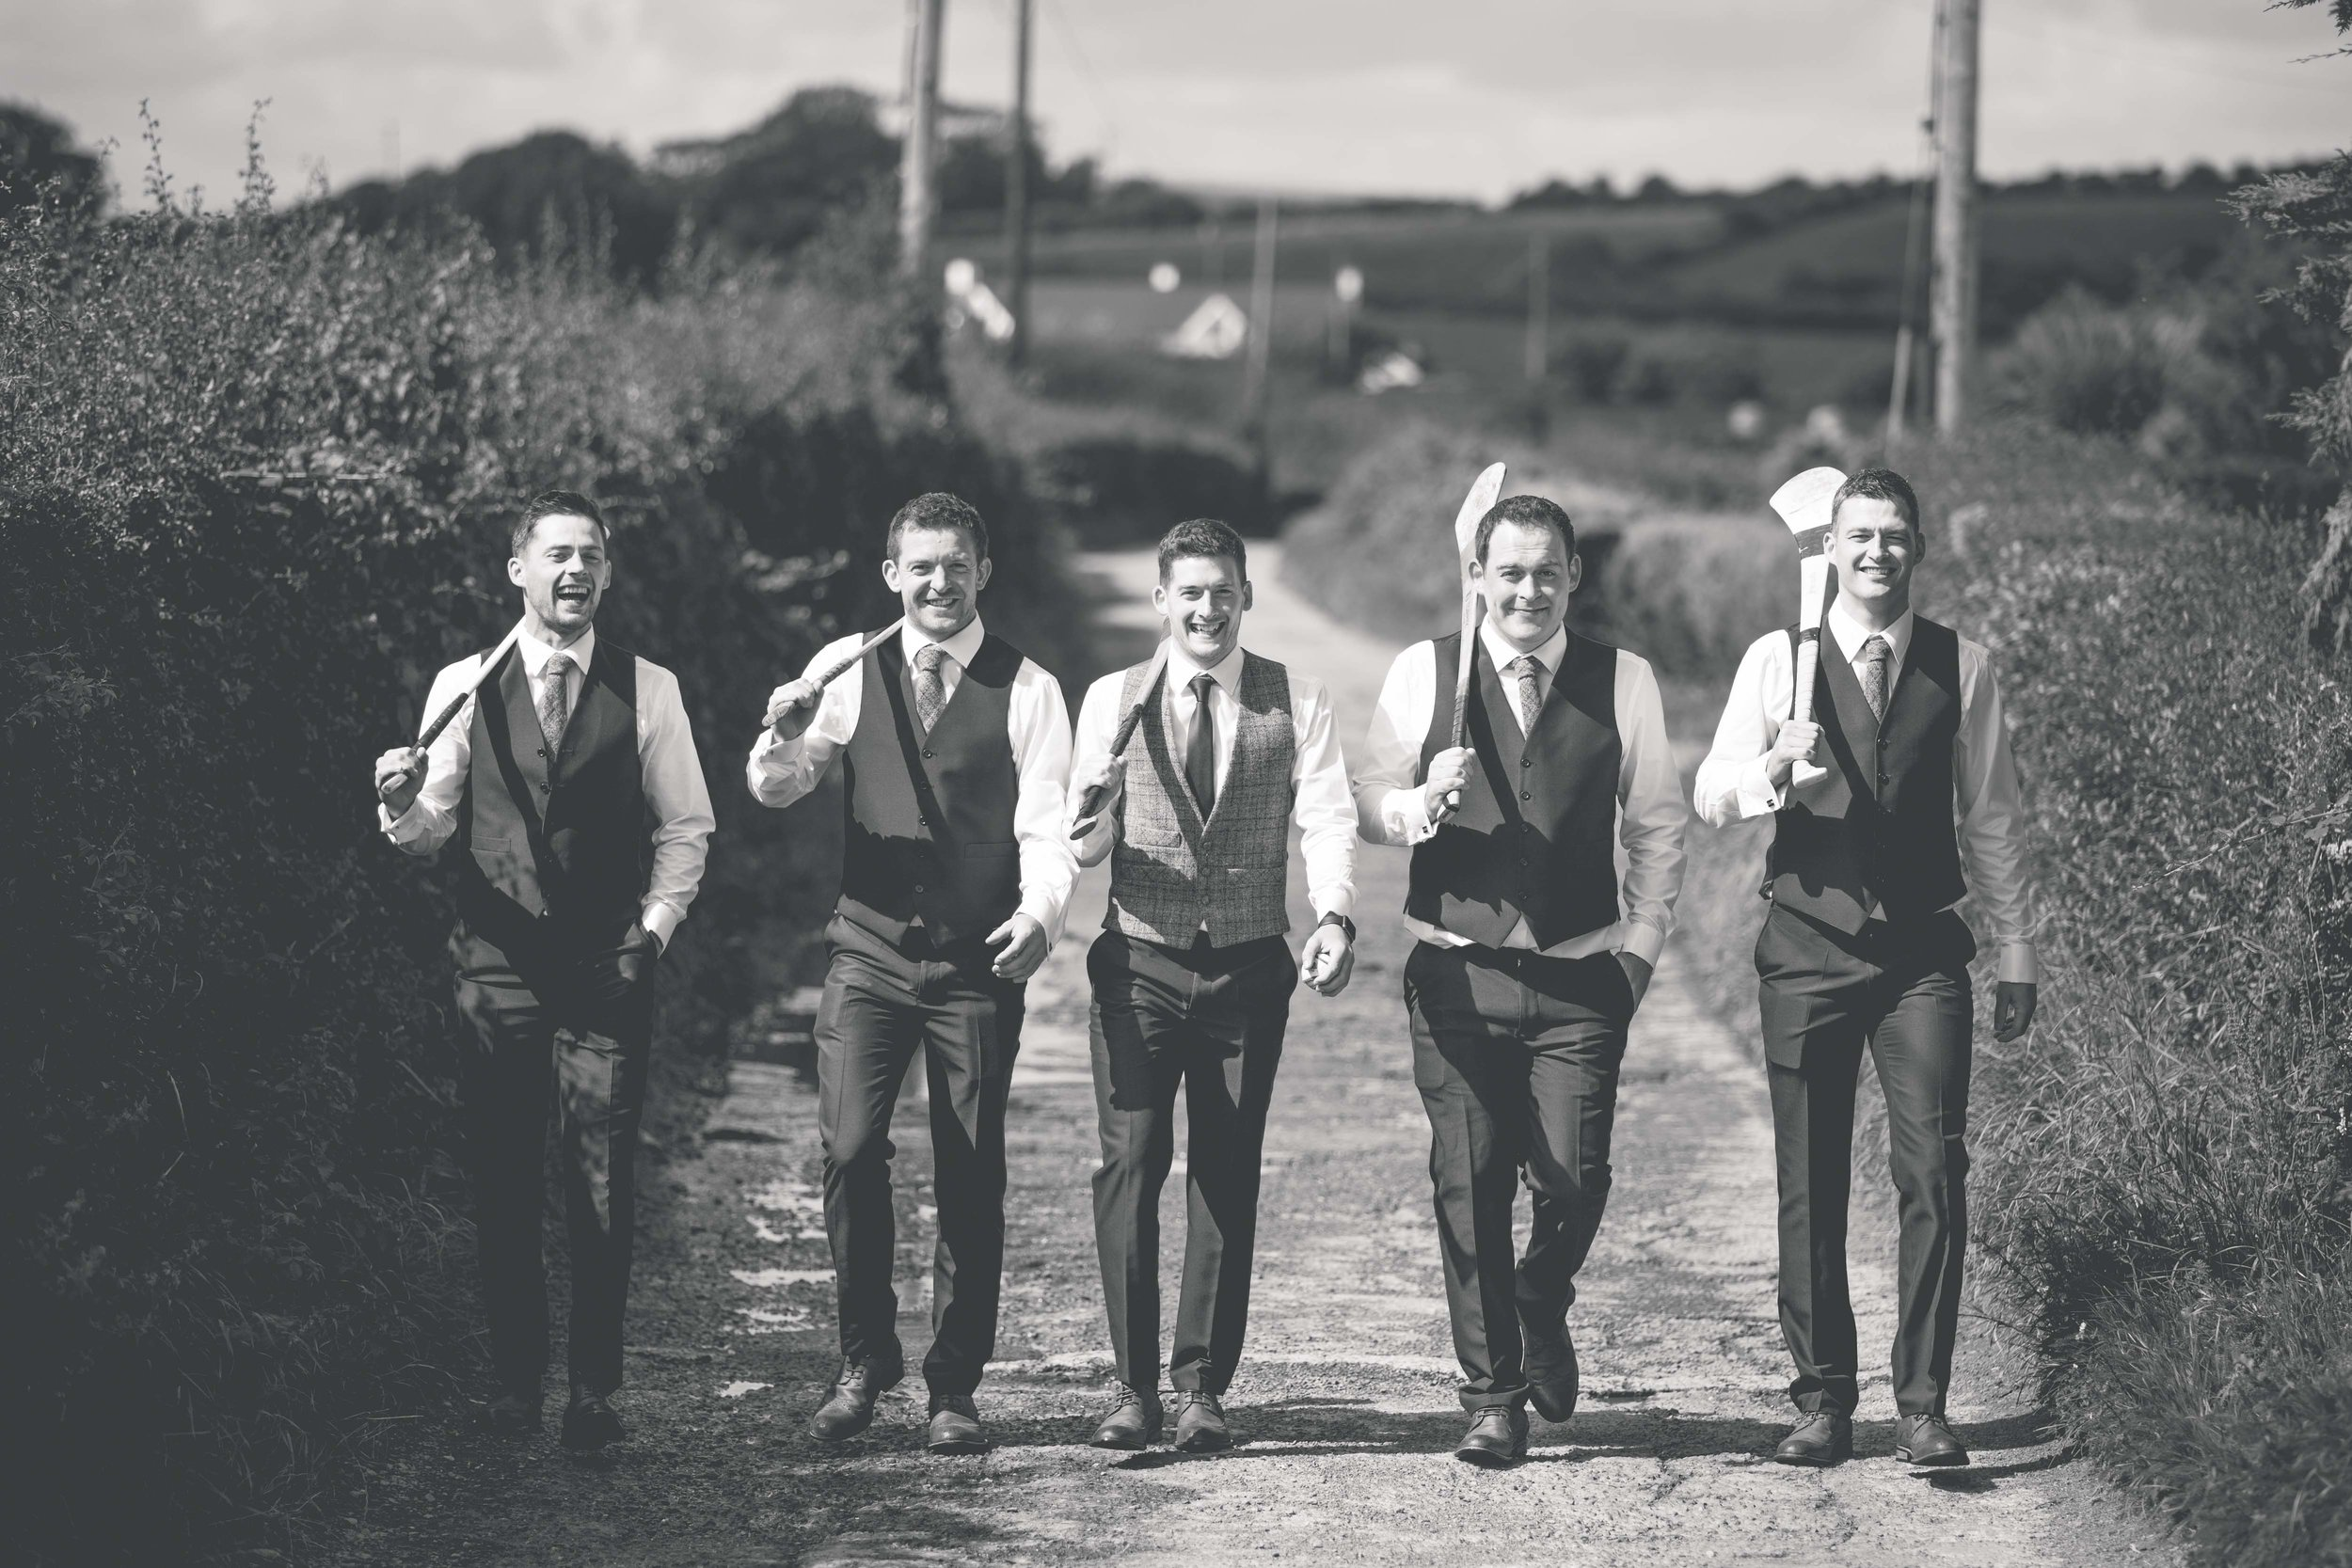 Northern Ireland Wedding Photographer | Brian McEwan Photography | Affordable Wedding Photography Throughout Antrim Down Armagh Tyrone Londonderry Derry Down Fermanagh -8.jpg